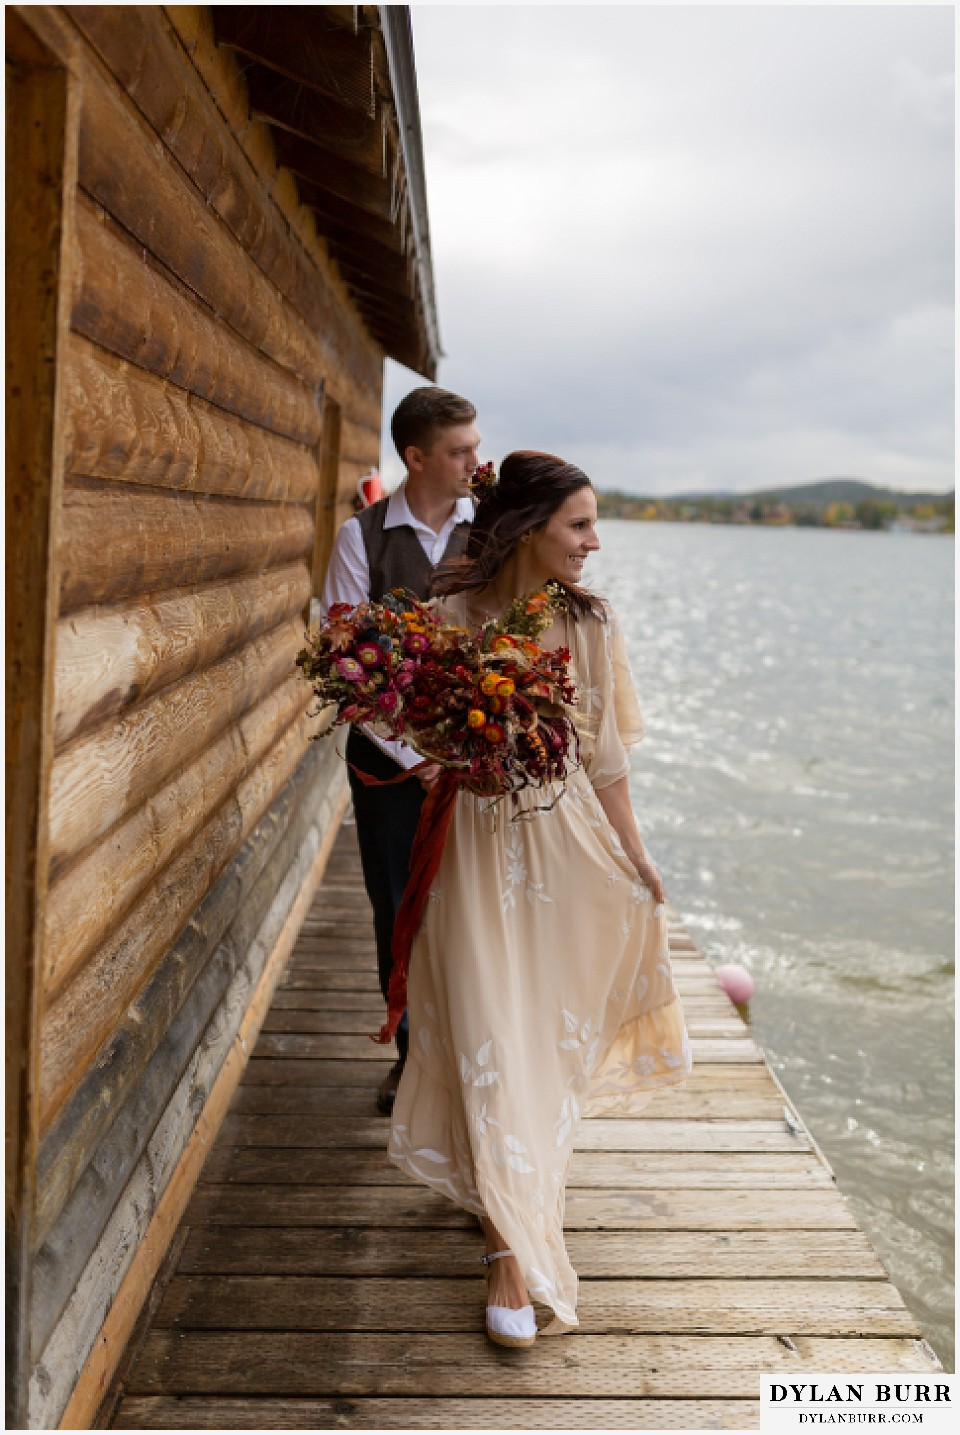 grand lake wedding elopement bride and groom walking back to shore from boat house